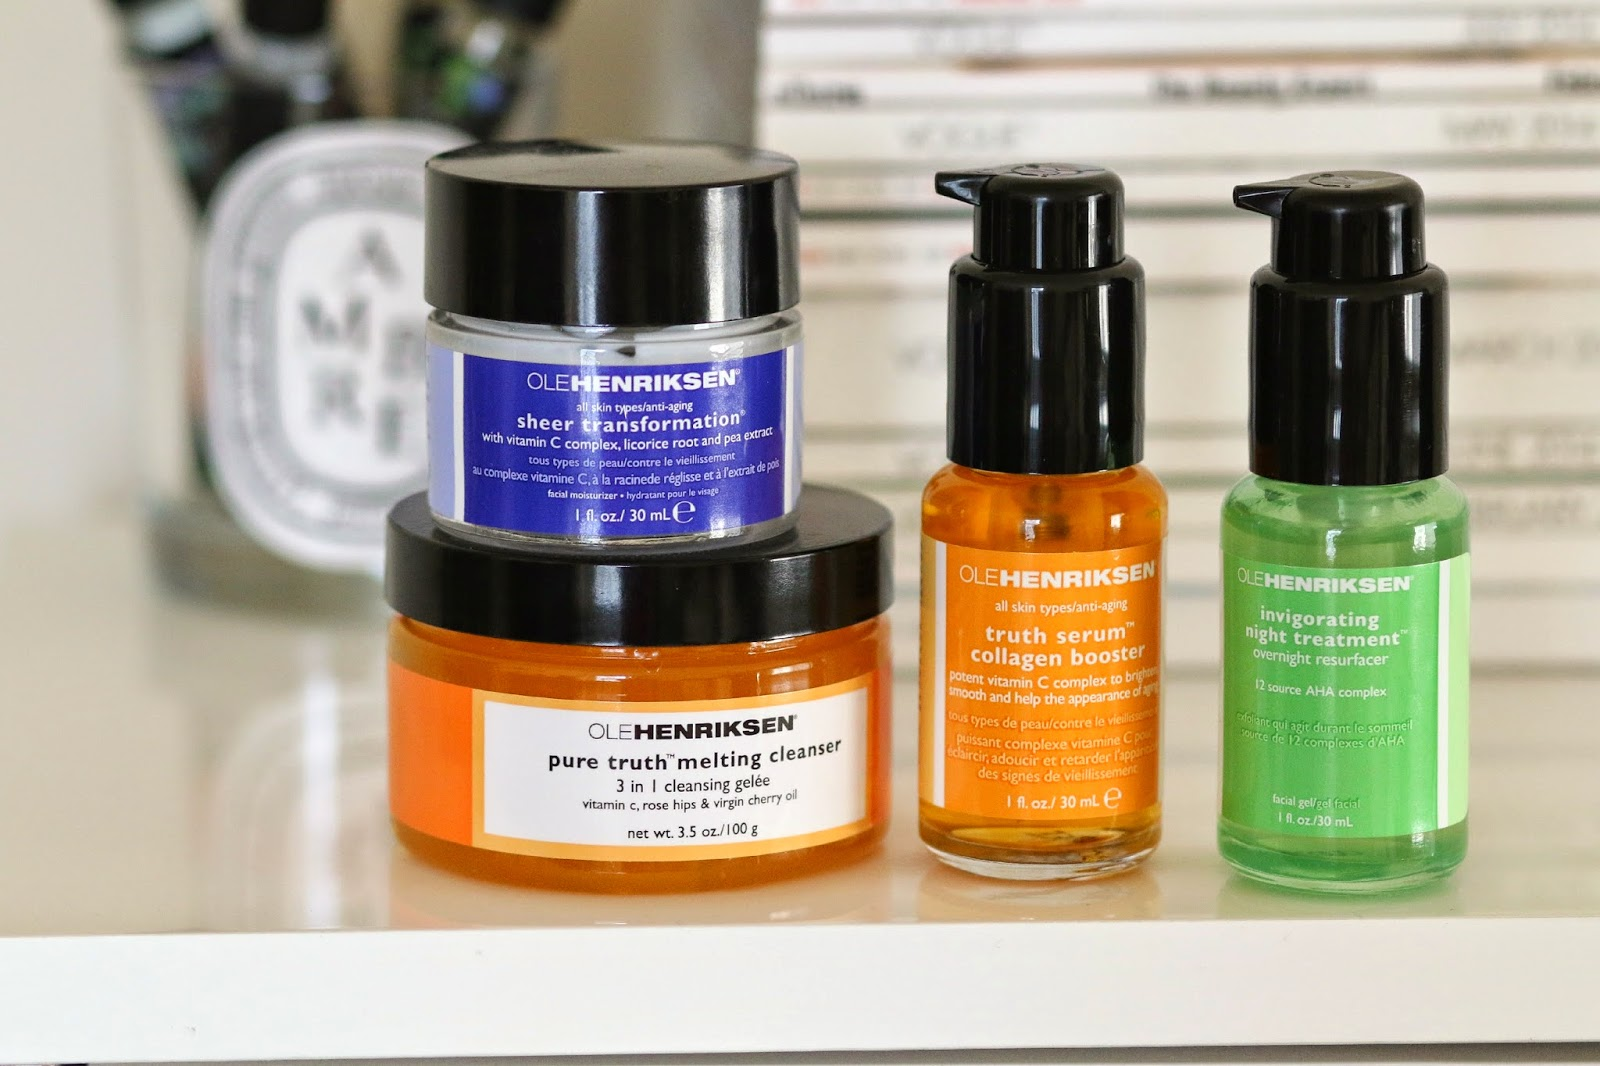 where to buy ole henriksen products